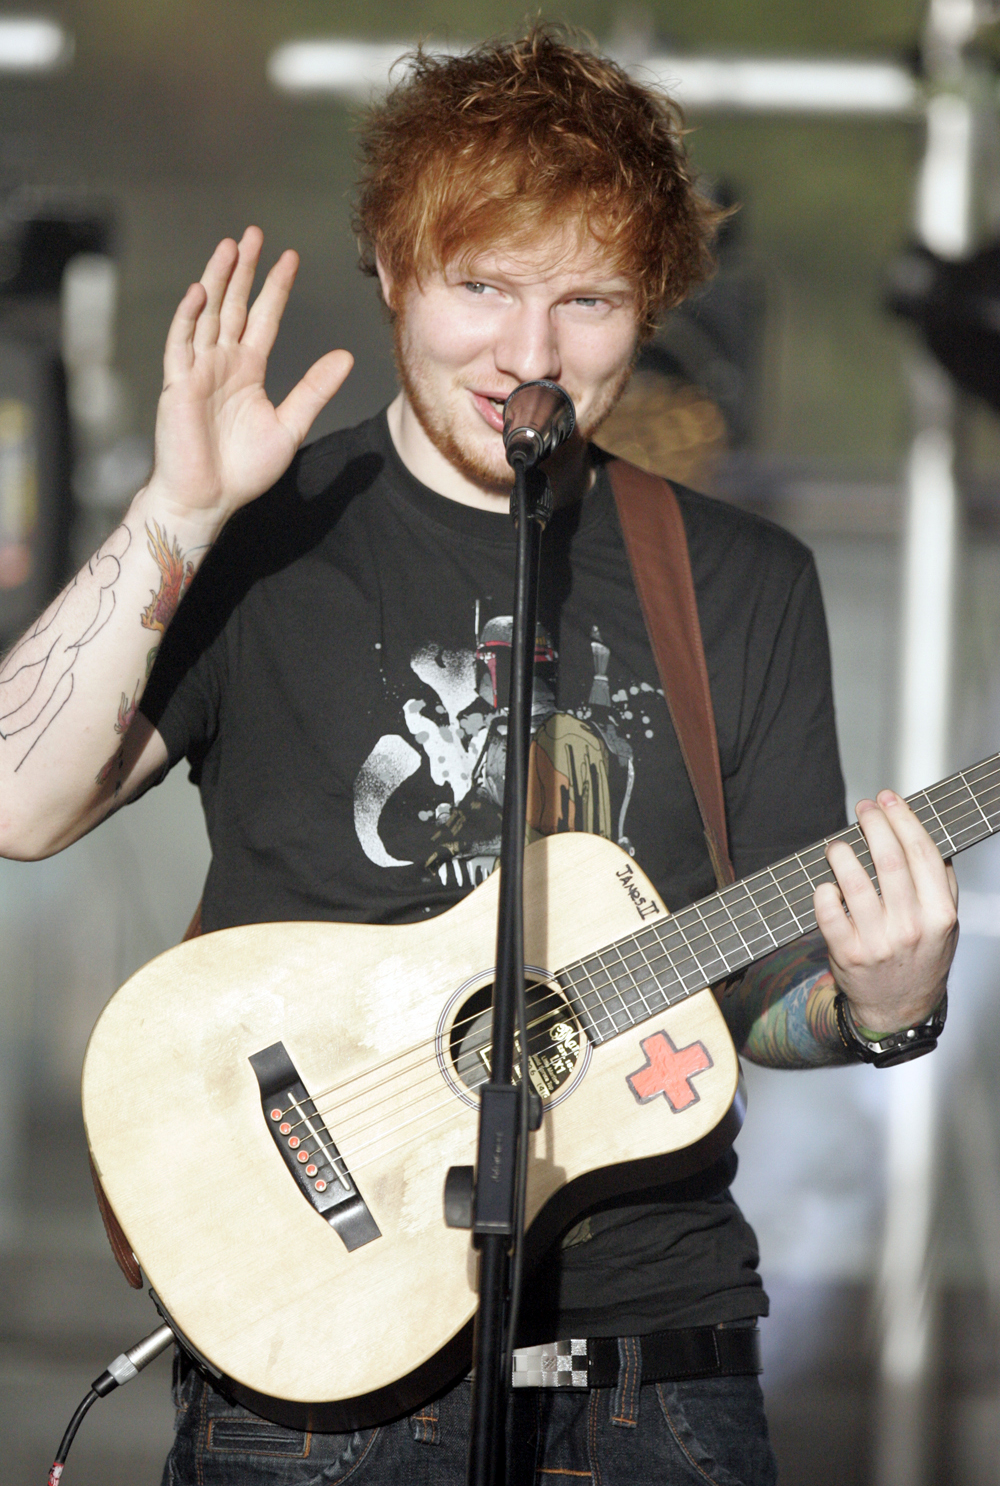 Ed Sheeran discography - Wikipedia